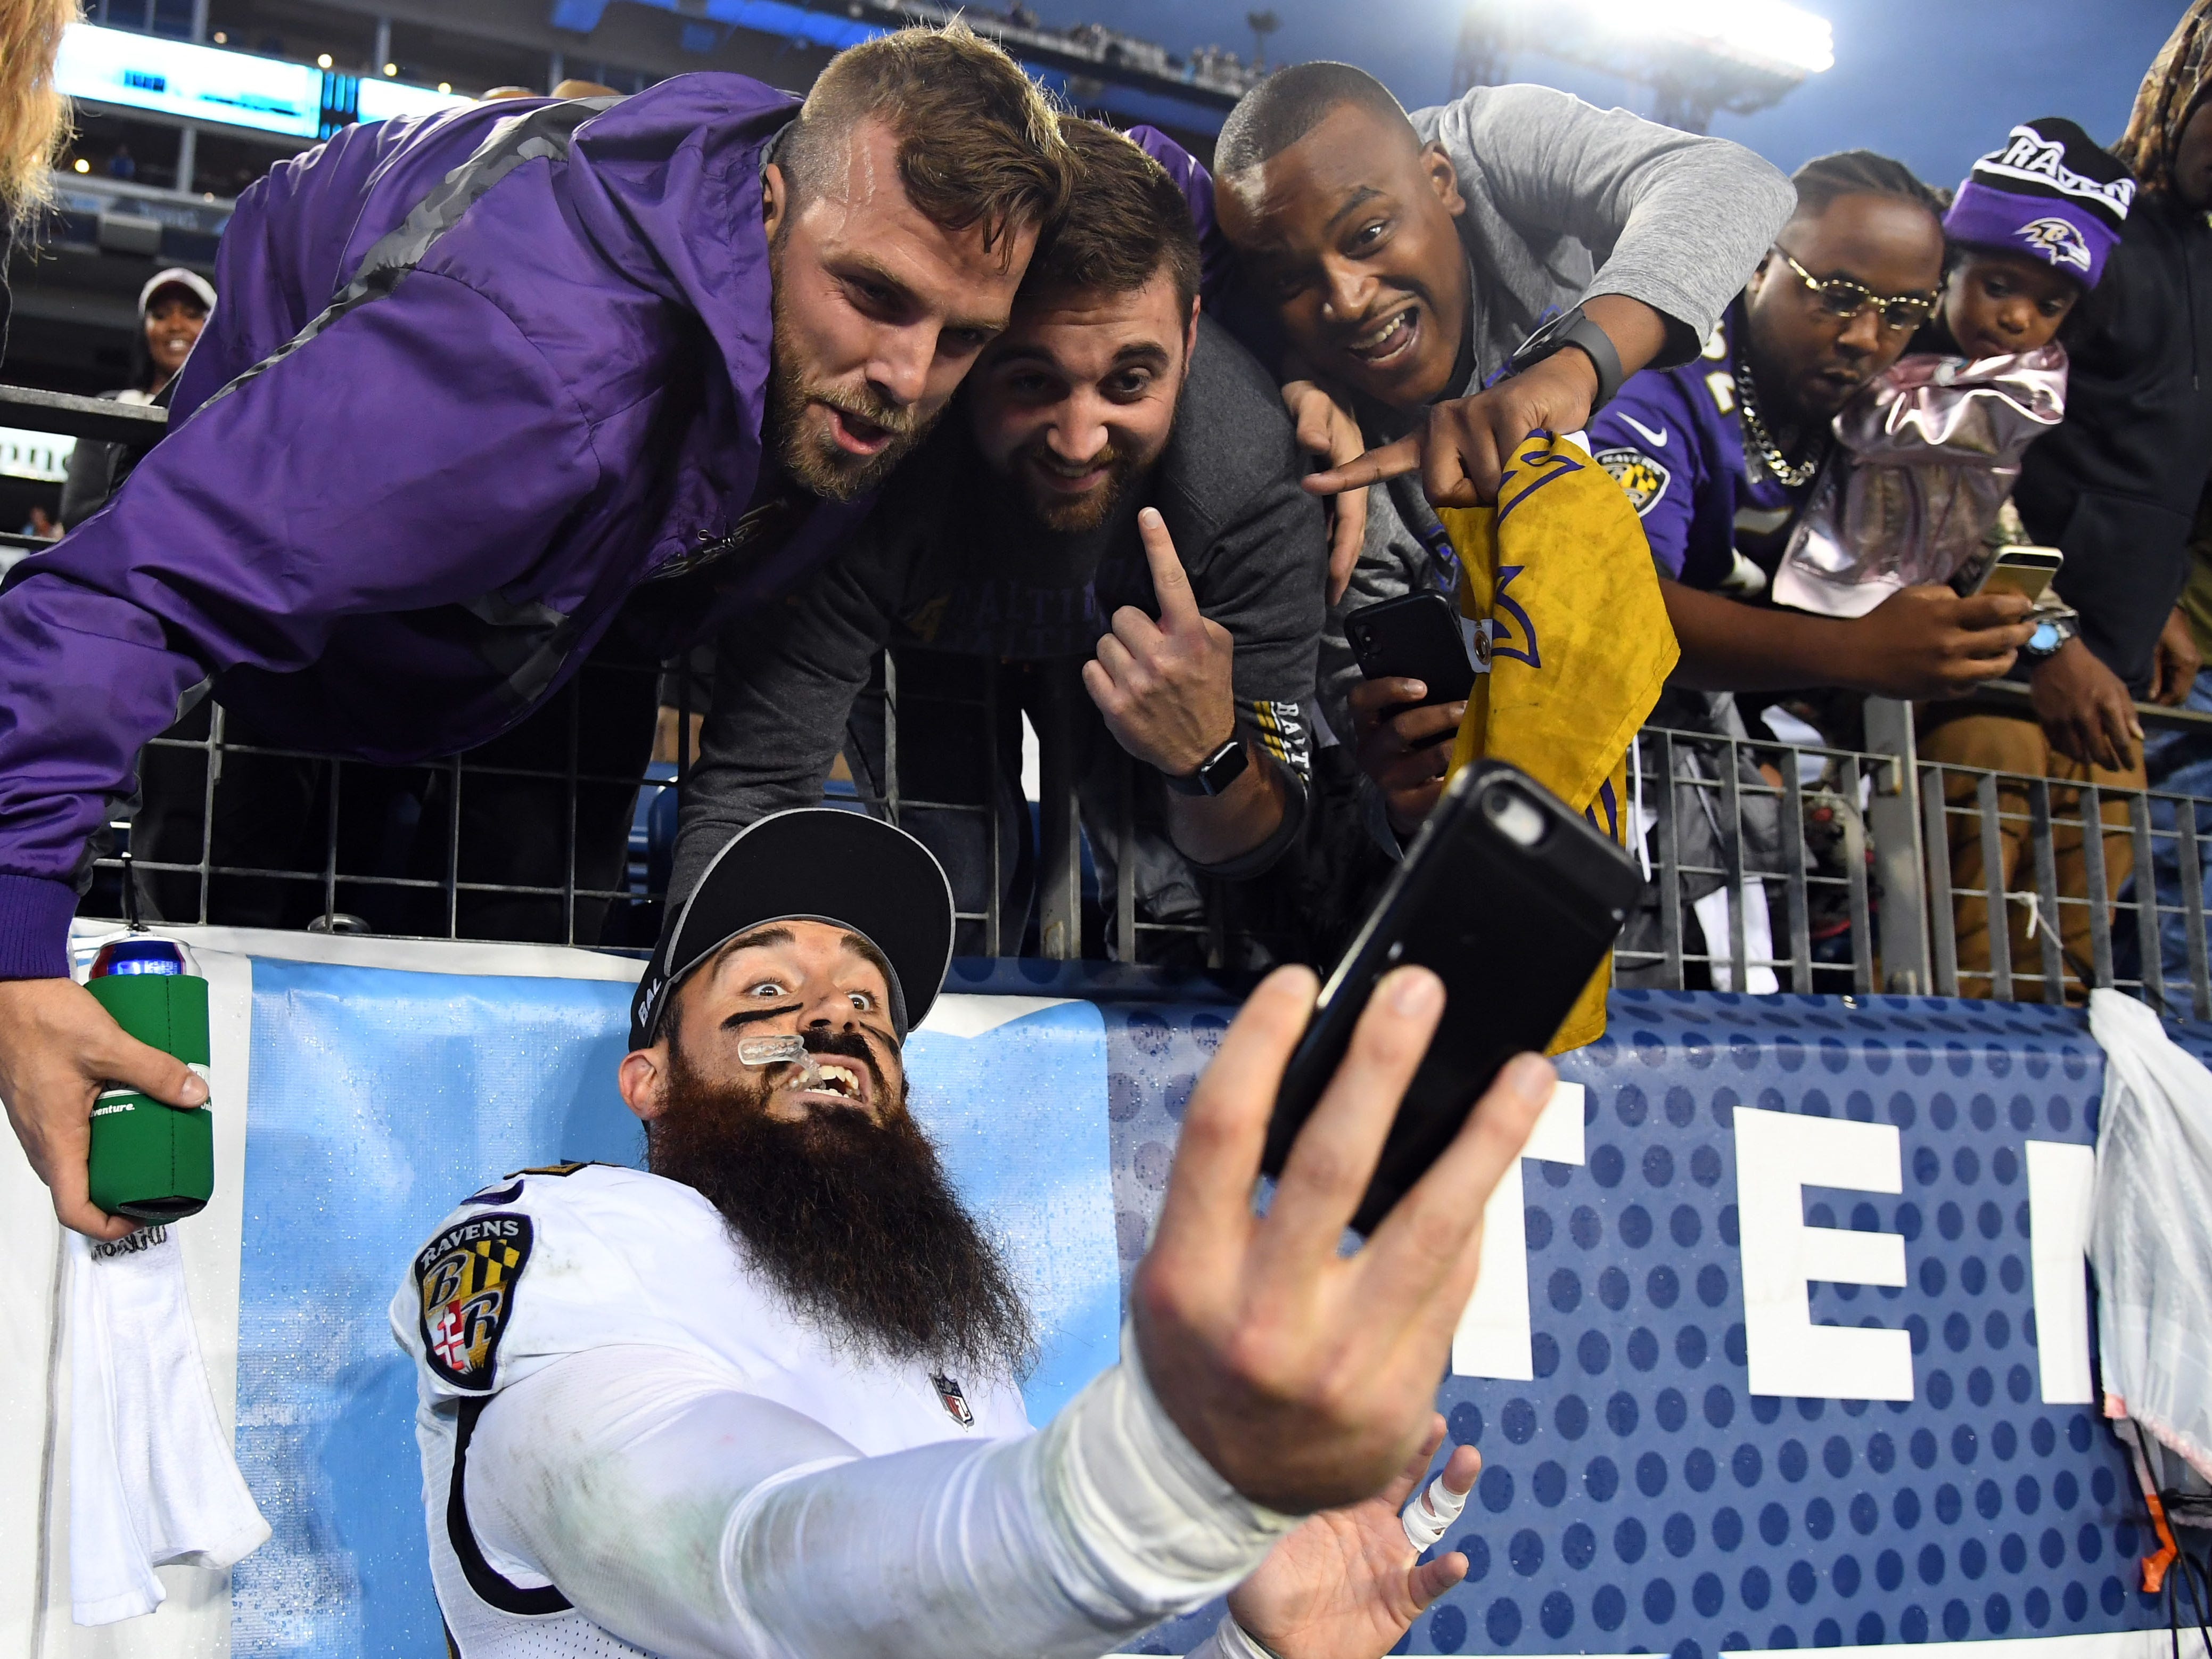 Baltimore Ravens free safety Eric Weddle poses for a selfie with fans after a win against the Tennessee Titans at Nissan Stadium.